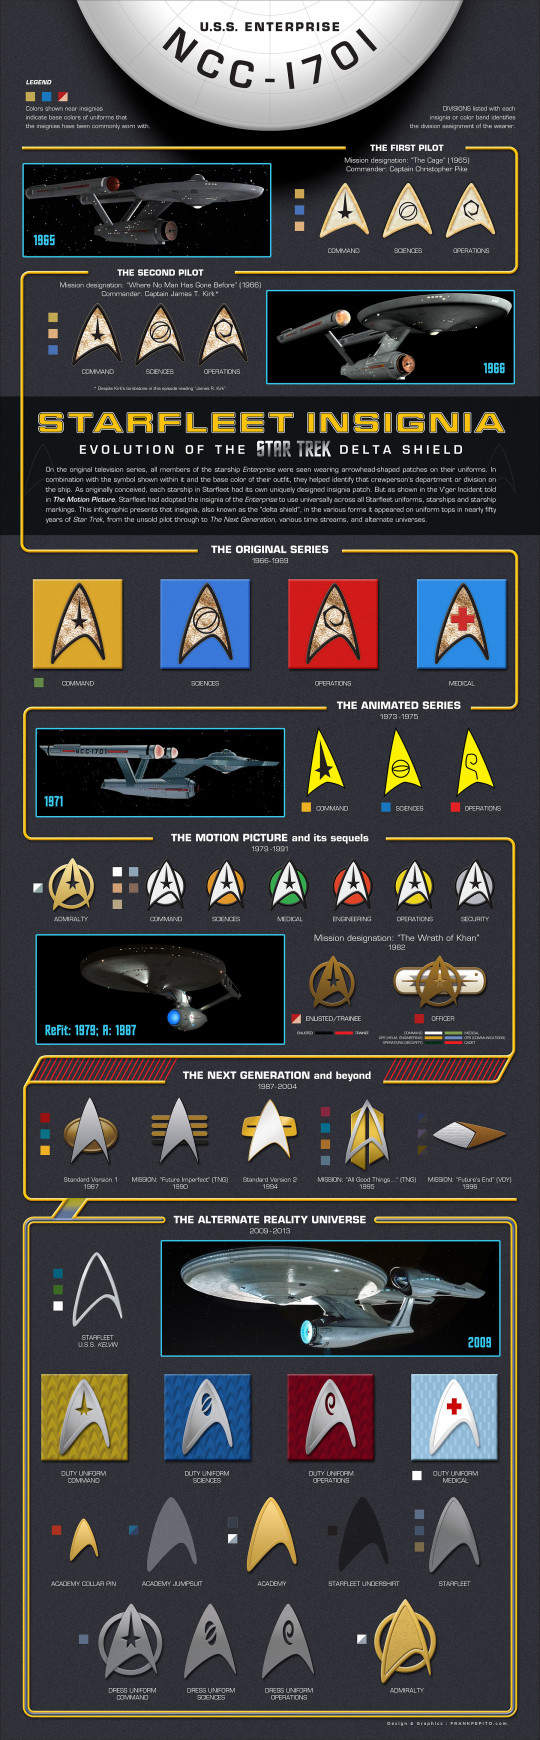 Starfleet Insignia: Evolution of the Star Trek Delta Shield